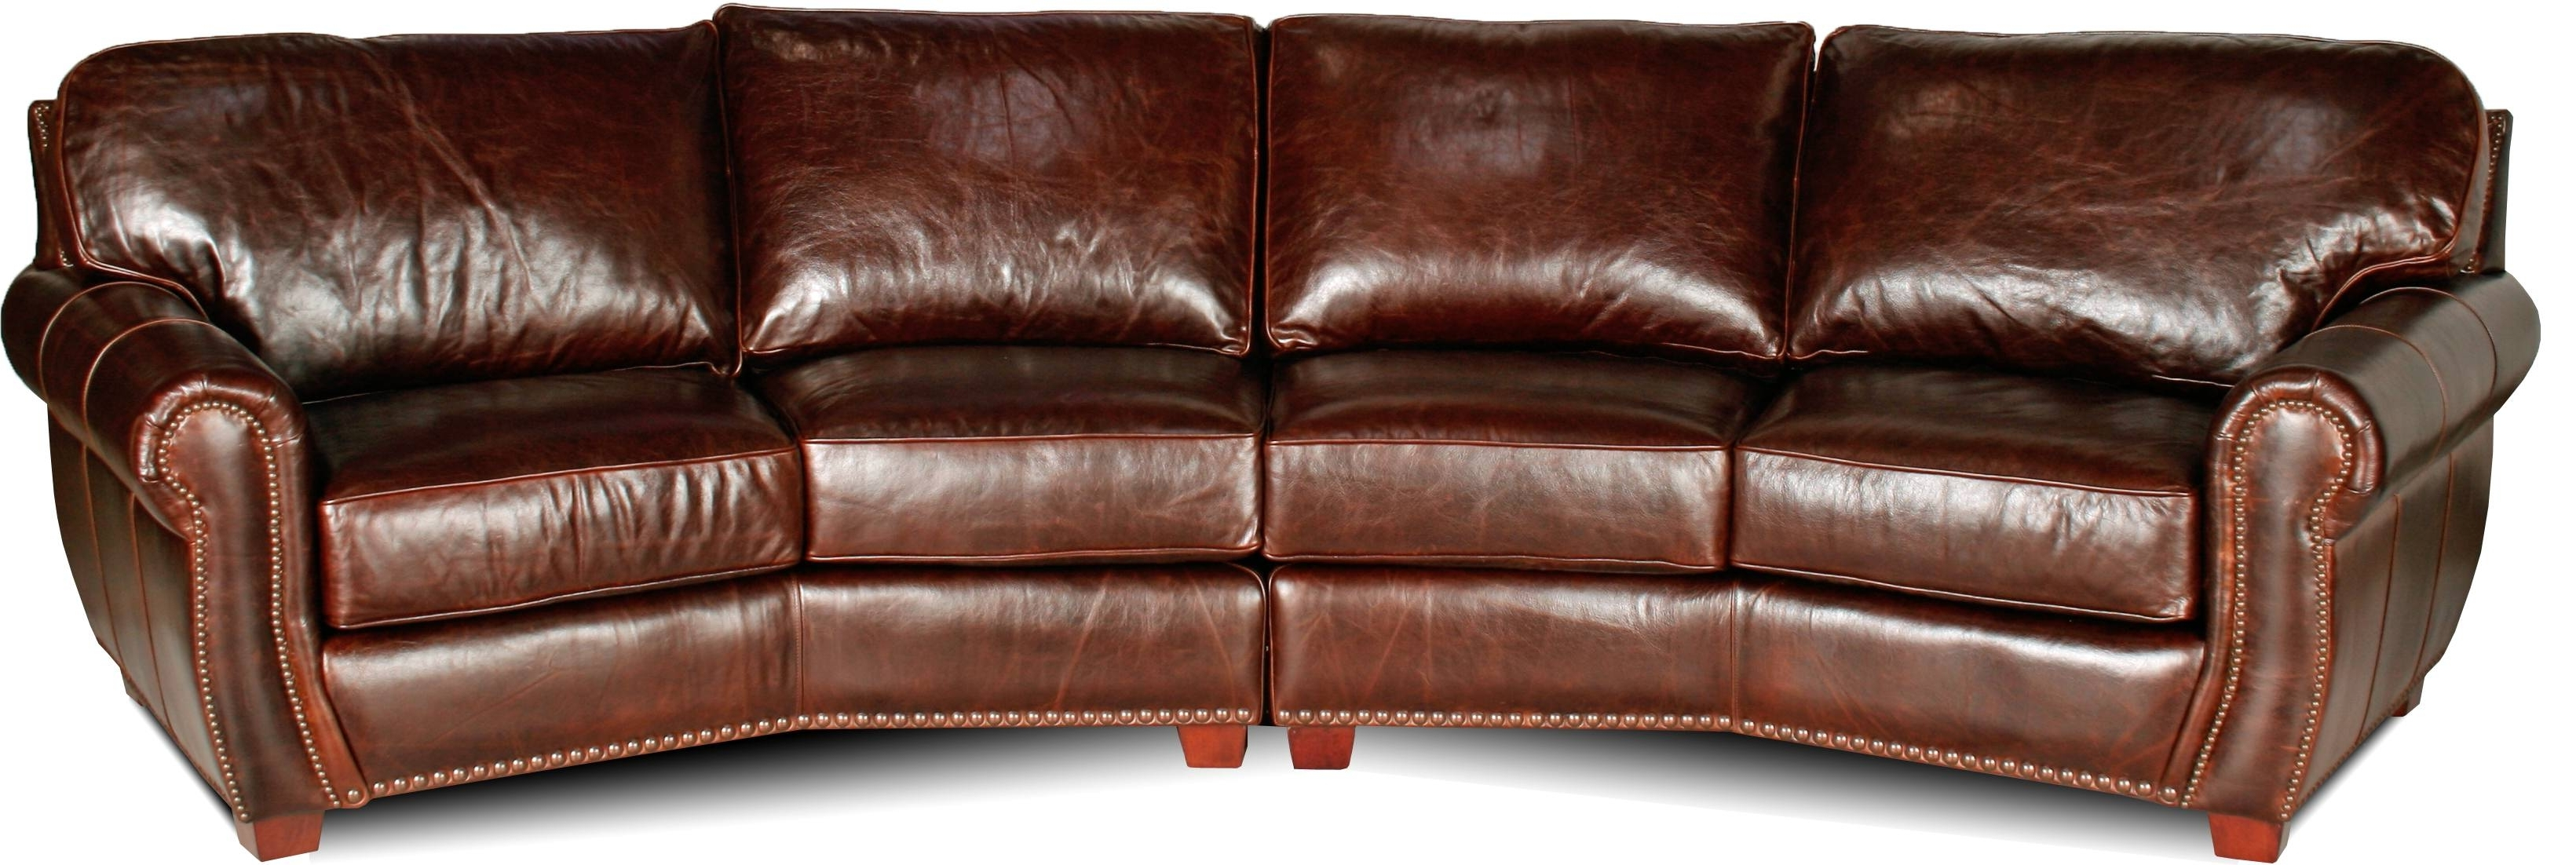 Leather Creations Furniture Pertaining To Large 4 Seater Sofas (View 9 of 20)